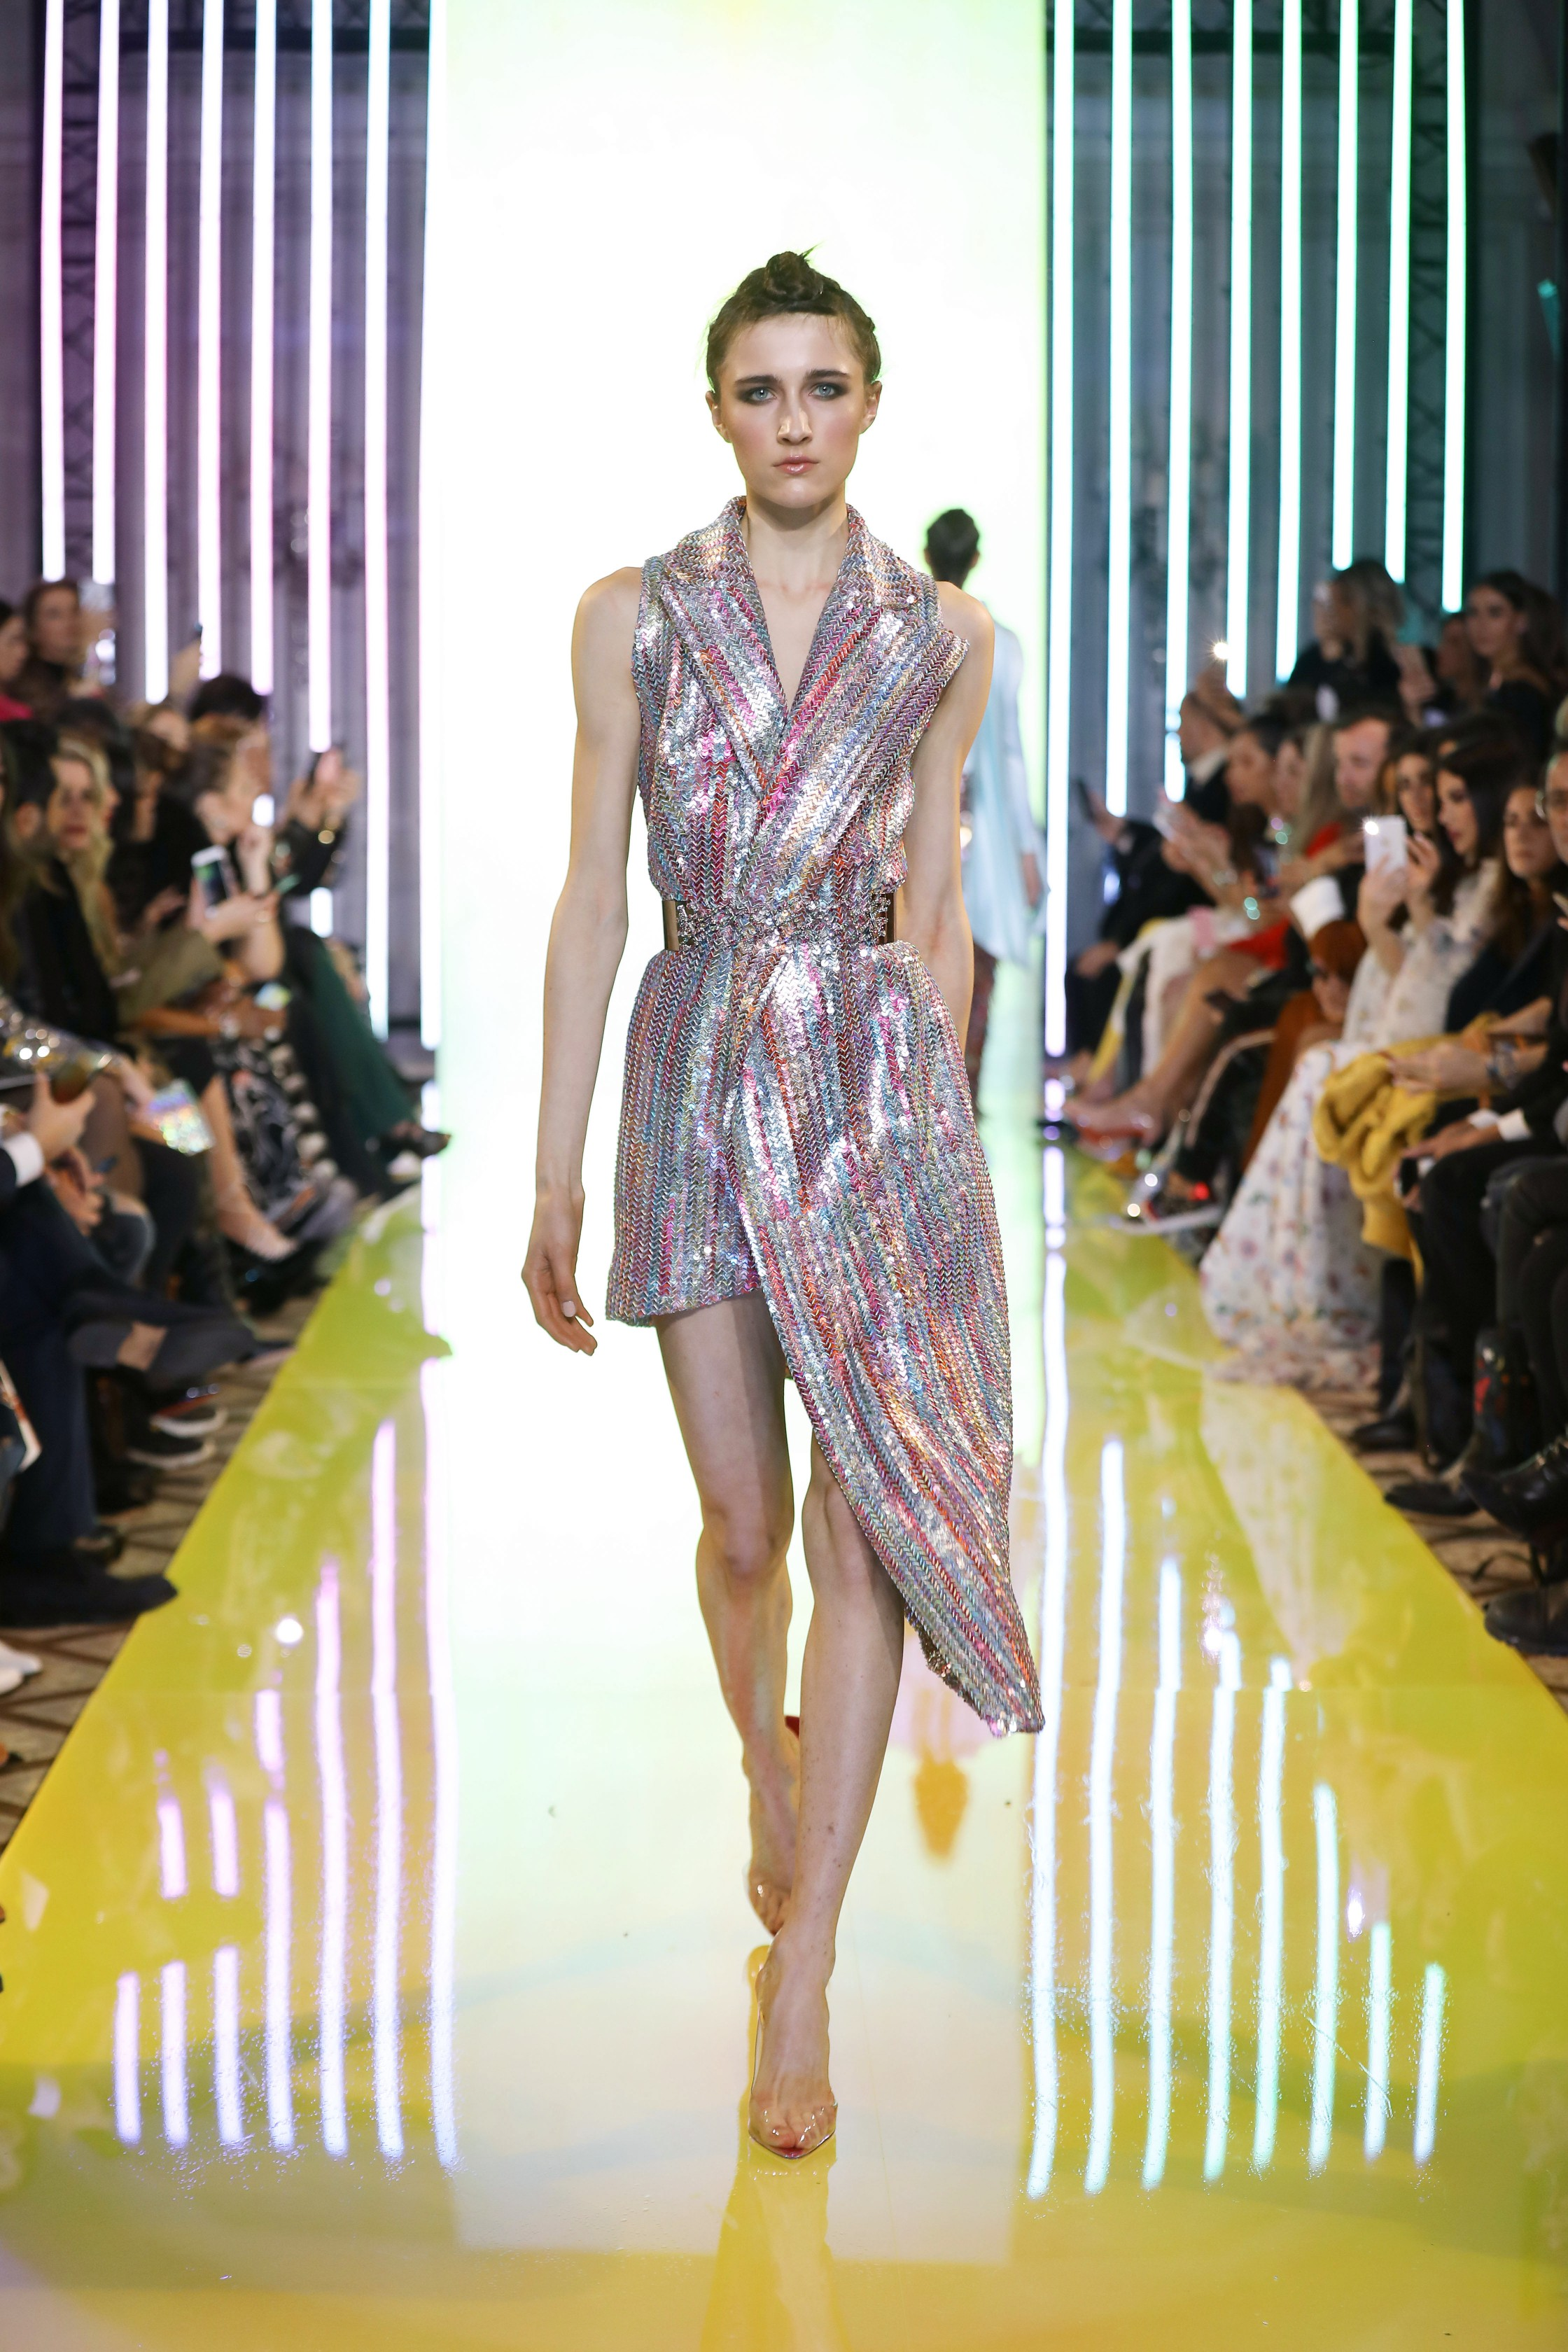 SS19-36- Pastel Metallic Asymmetric Tailleur Dress Featuring Holographic Colored Sequins And Silver Scroll Sequins .jpg